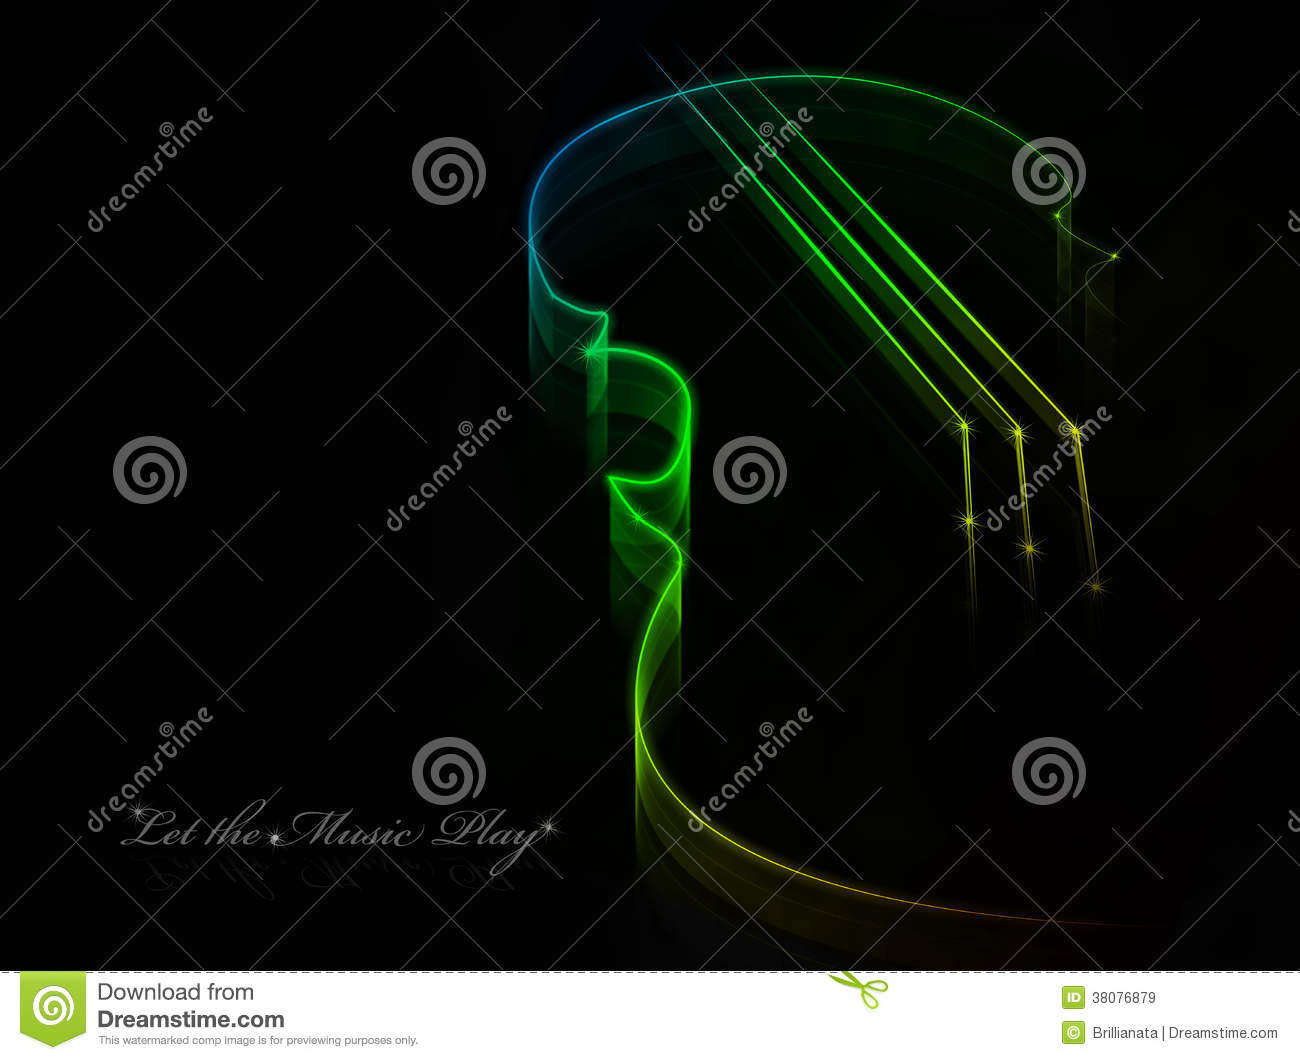 Neon Music Notes Background: Neon Music Background Royalty Free Stock Images